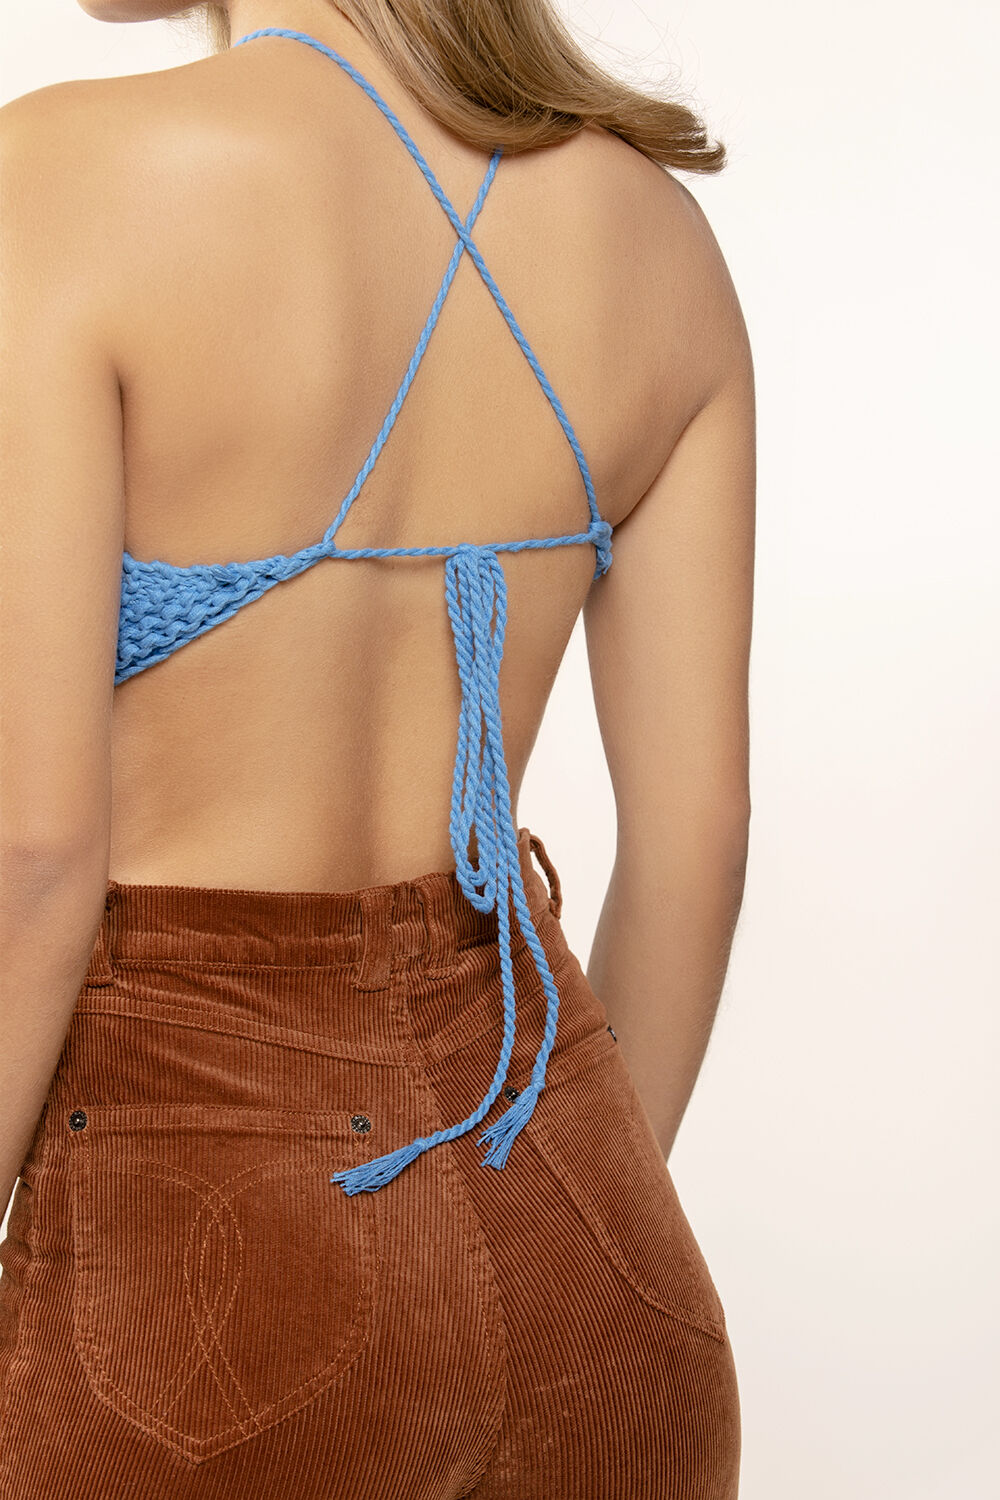 KNITTED HALTER TOP in colour BRIGHT COBALT